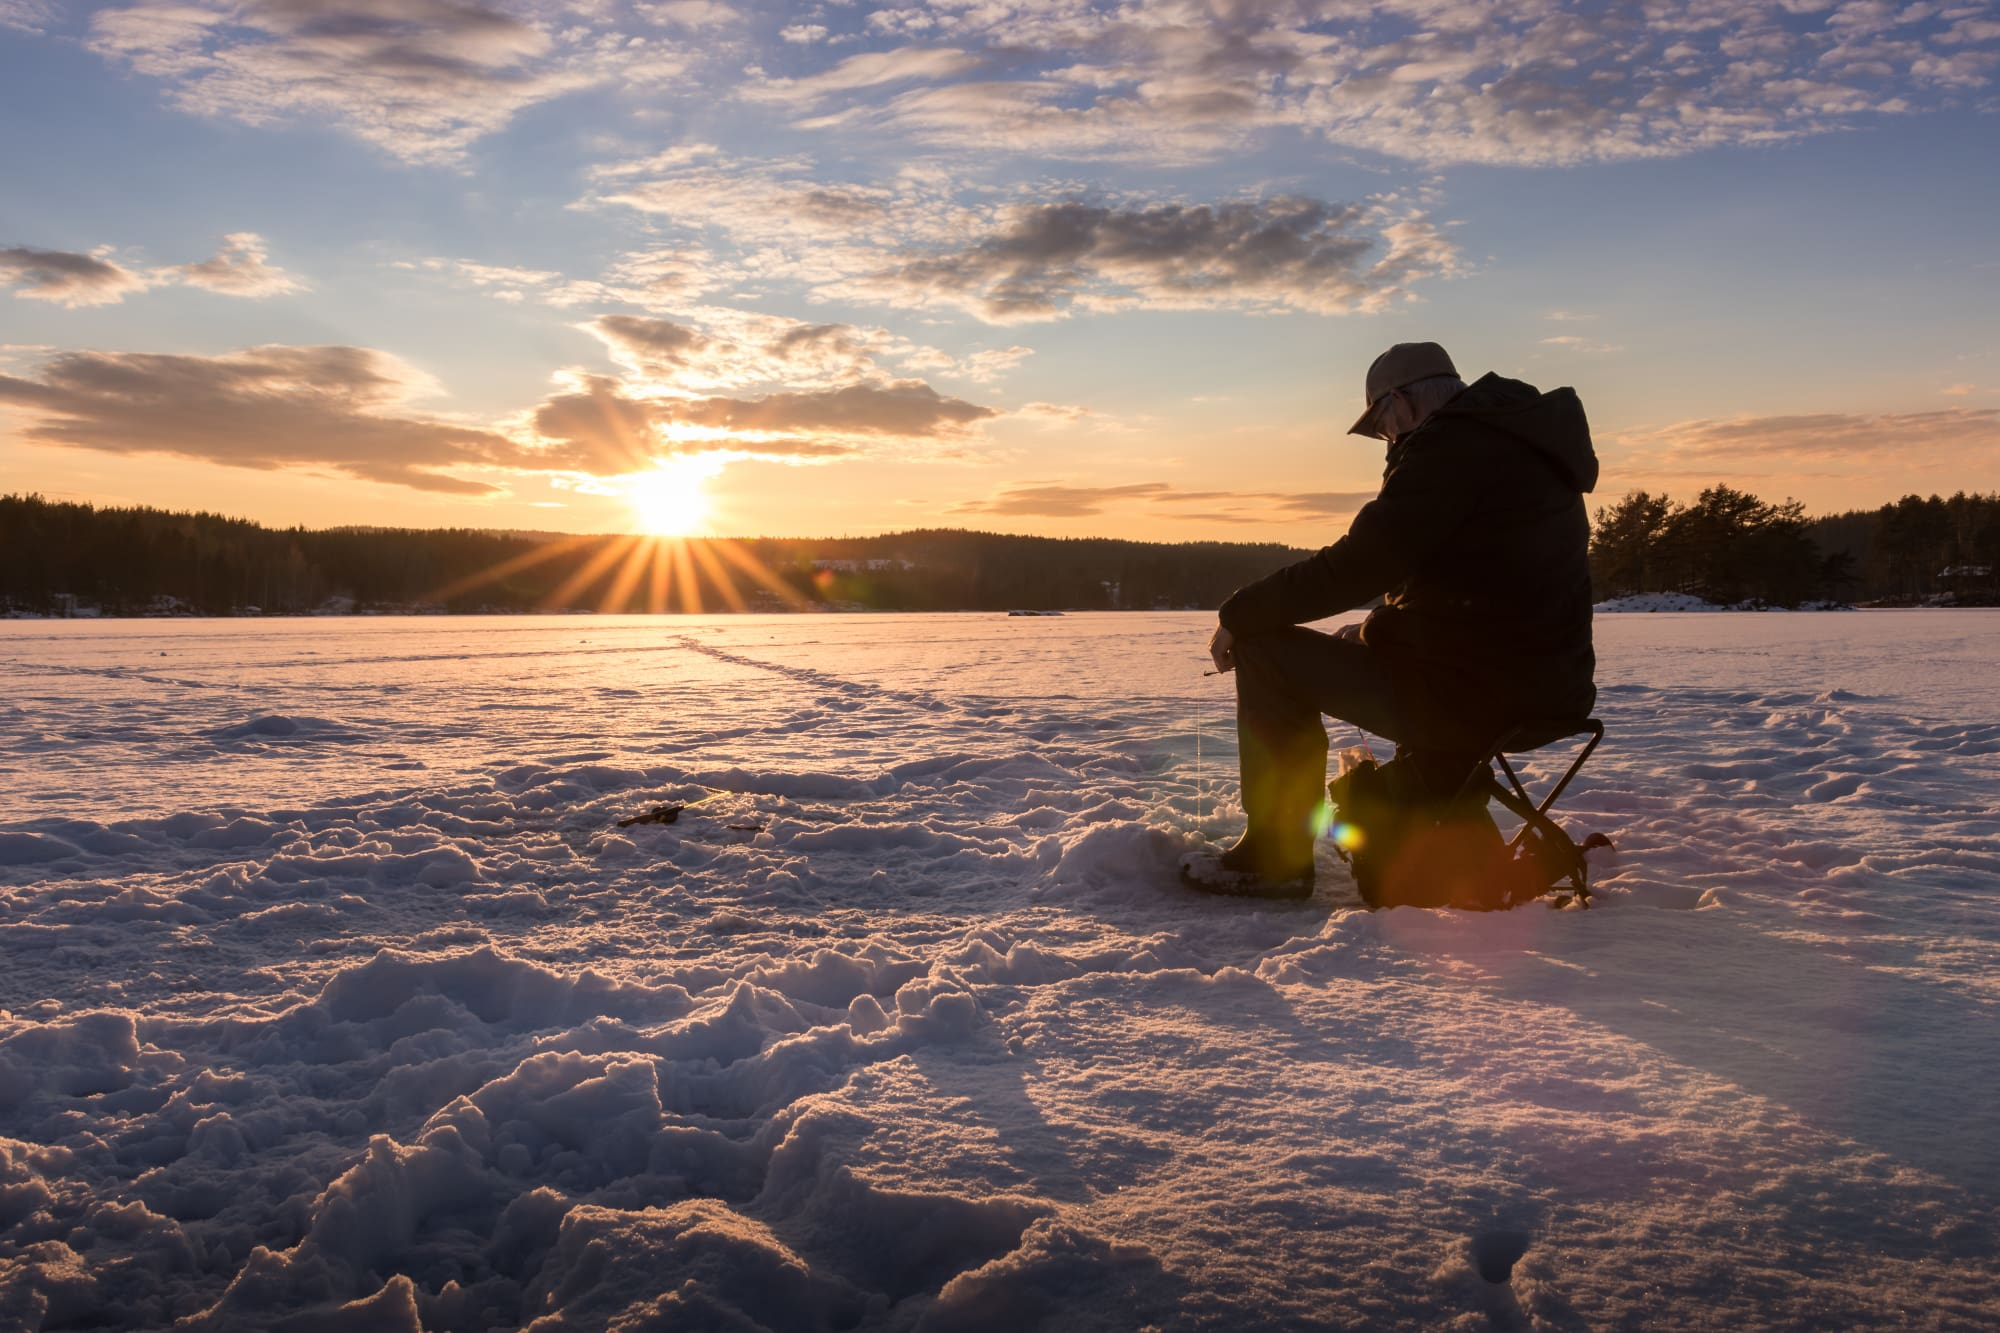 a silhouette of a person sits on a frozen lake while ice fishing in minnesota